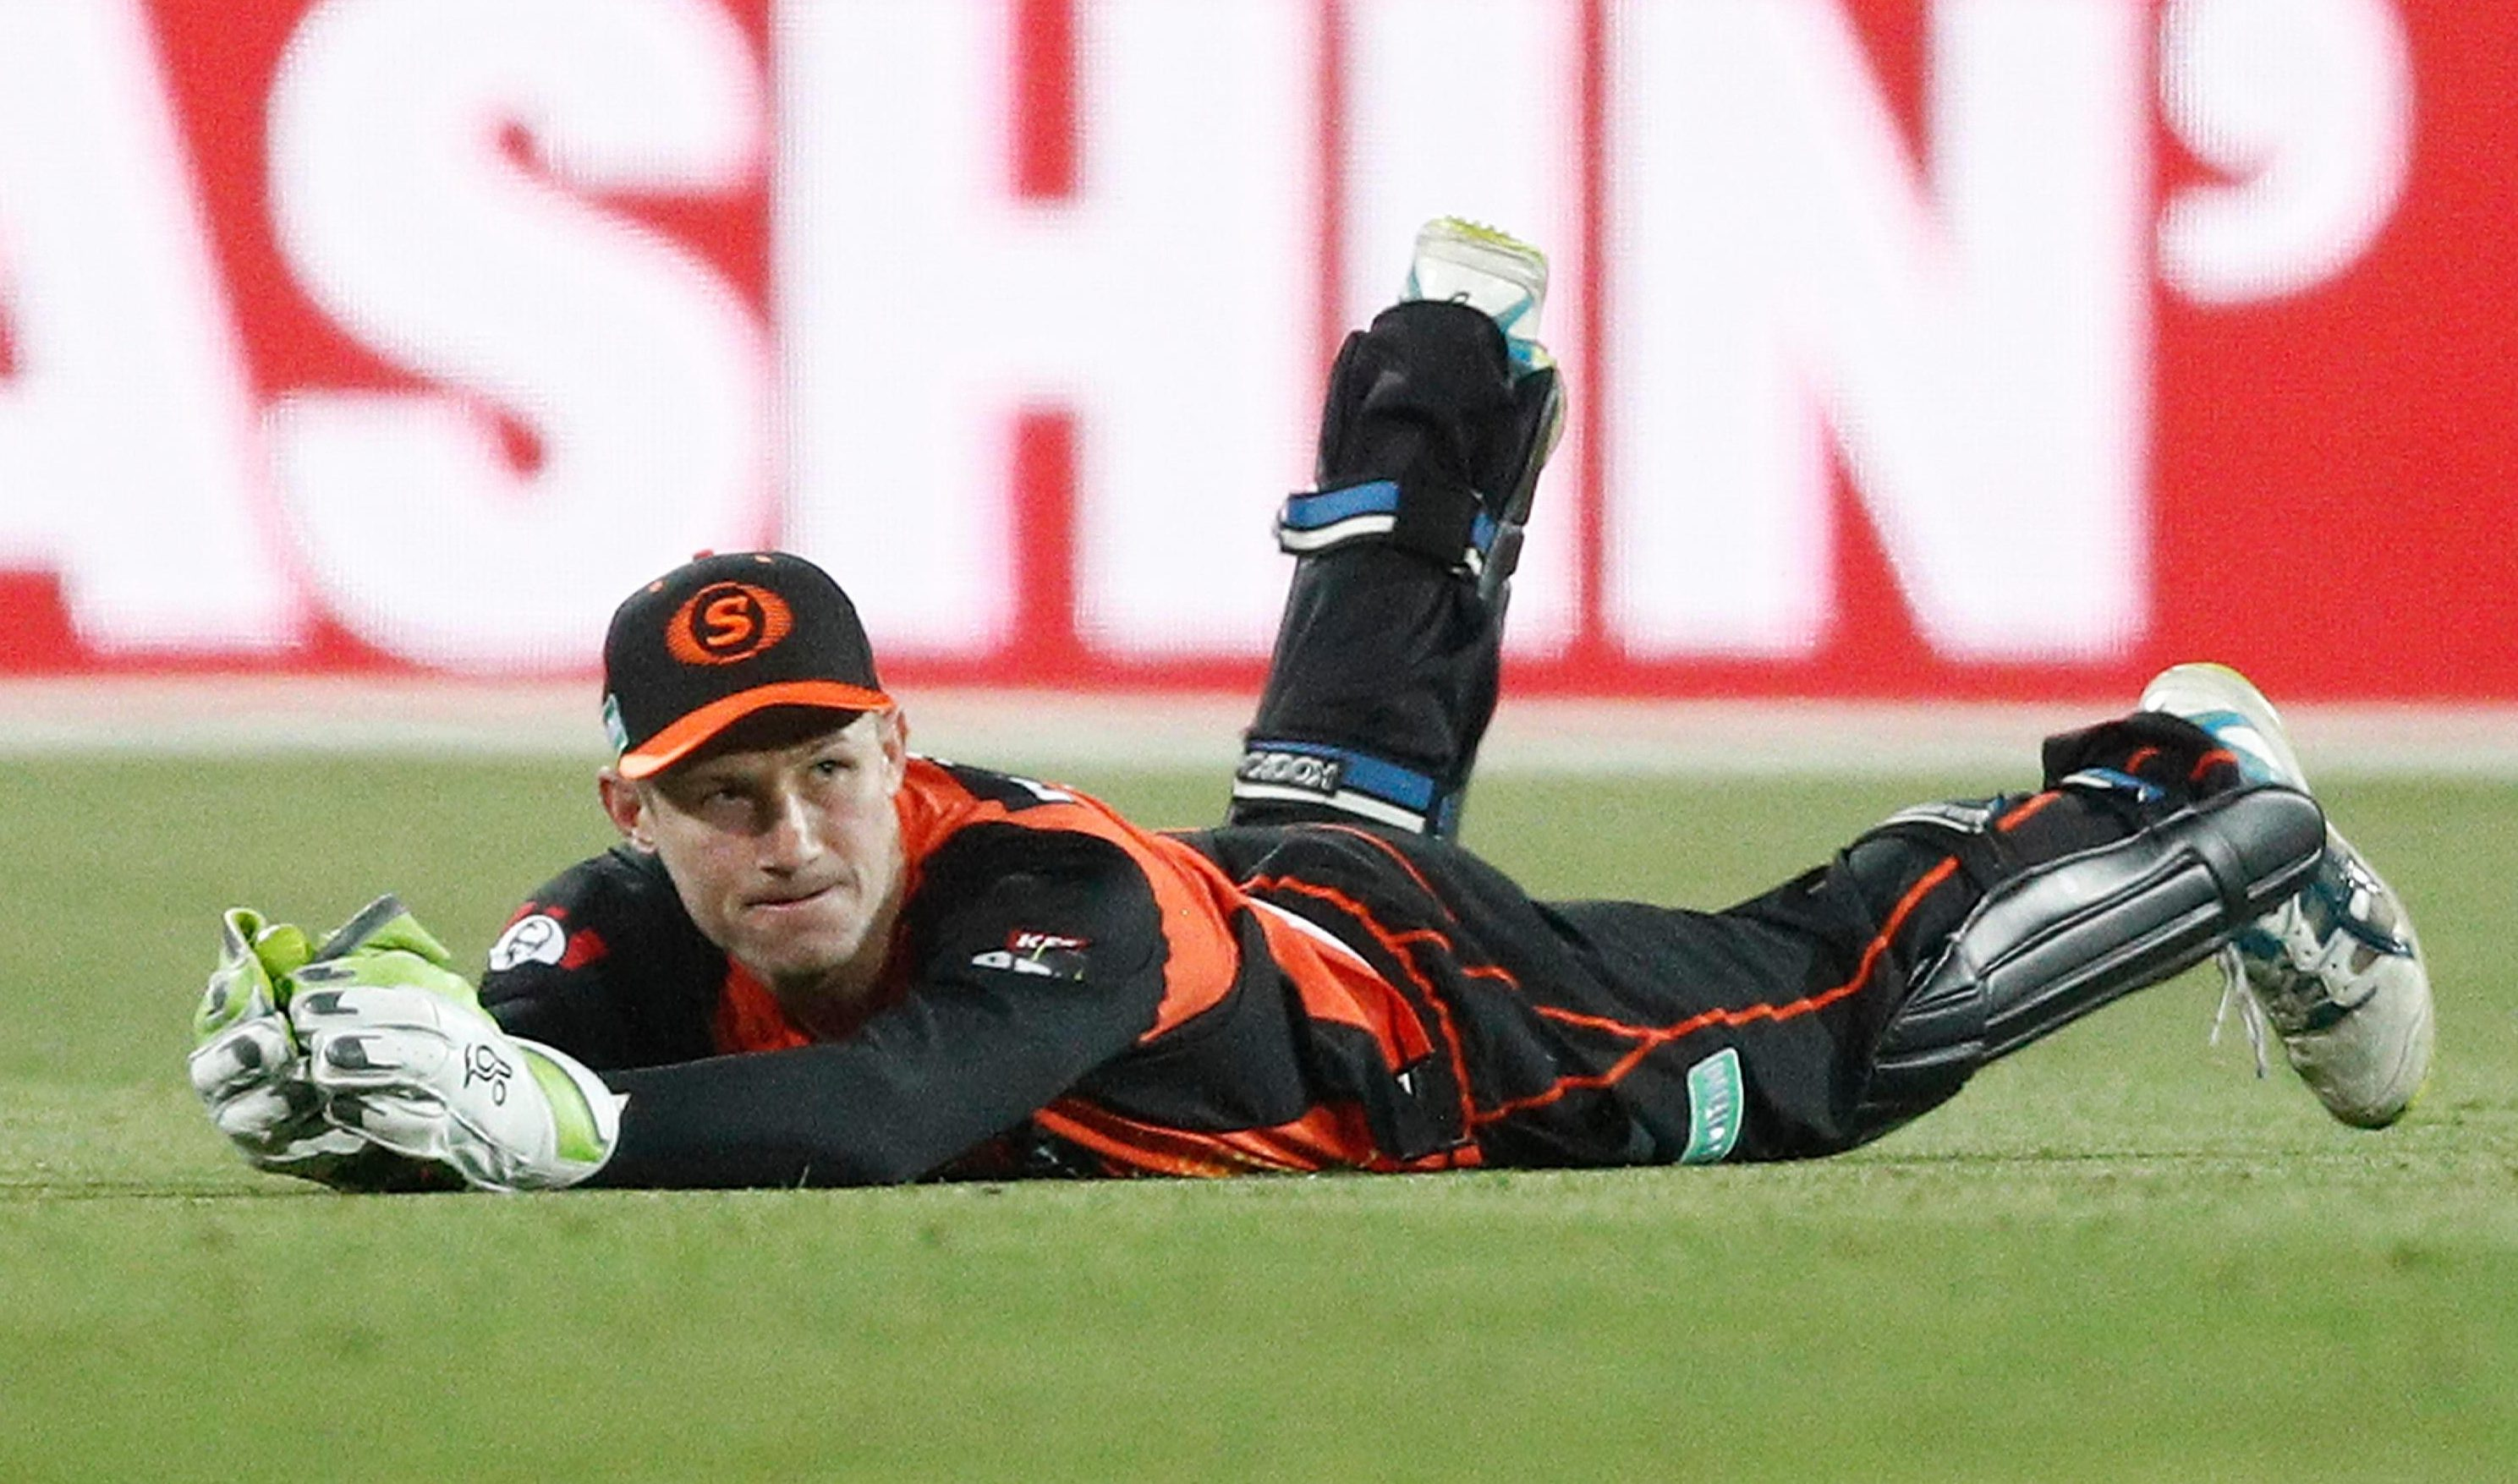 Bancroft took a catch for the Scorchers to dismiss Hobart wicket keeper Matthew Wade